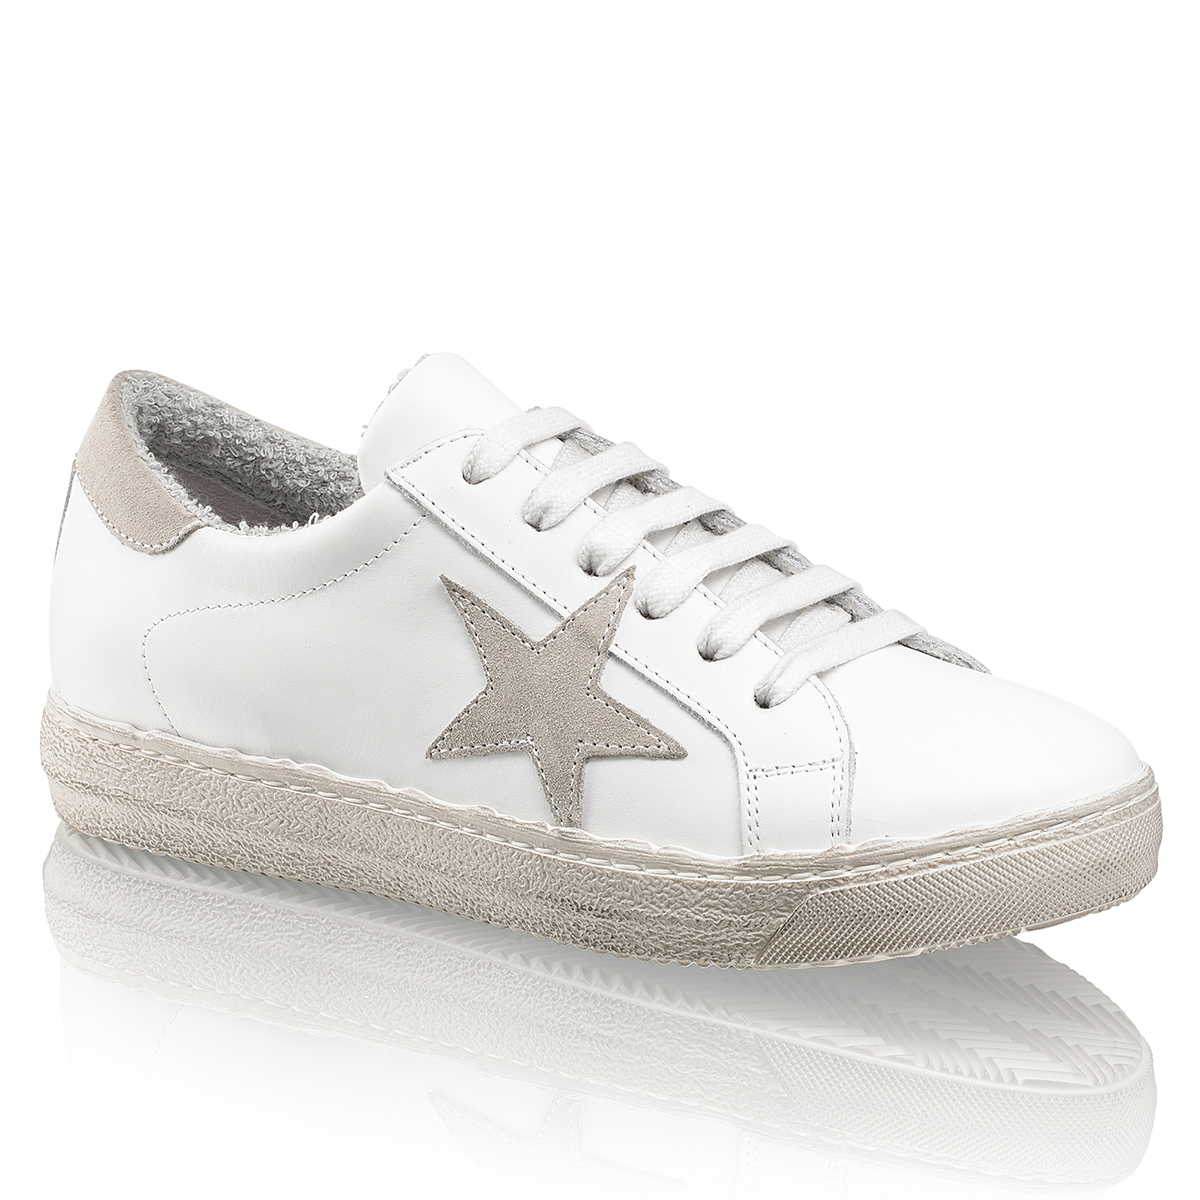 russell and bromley sneakers